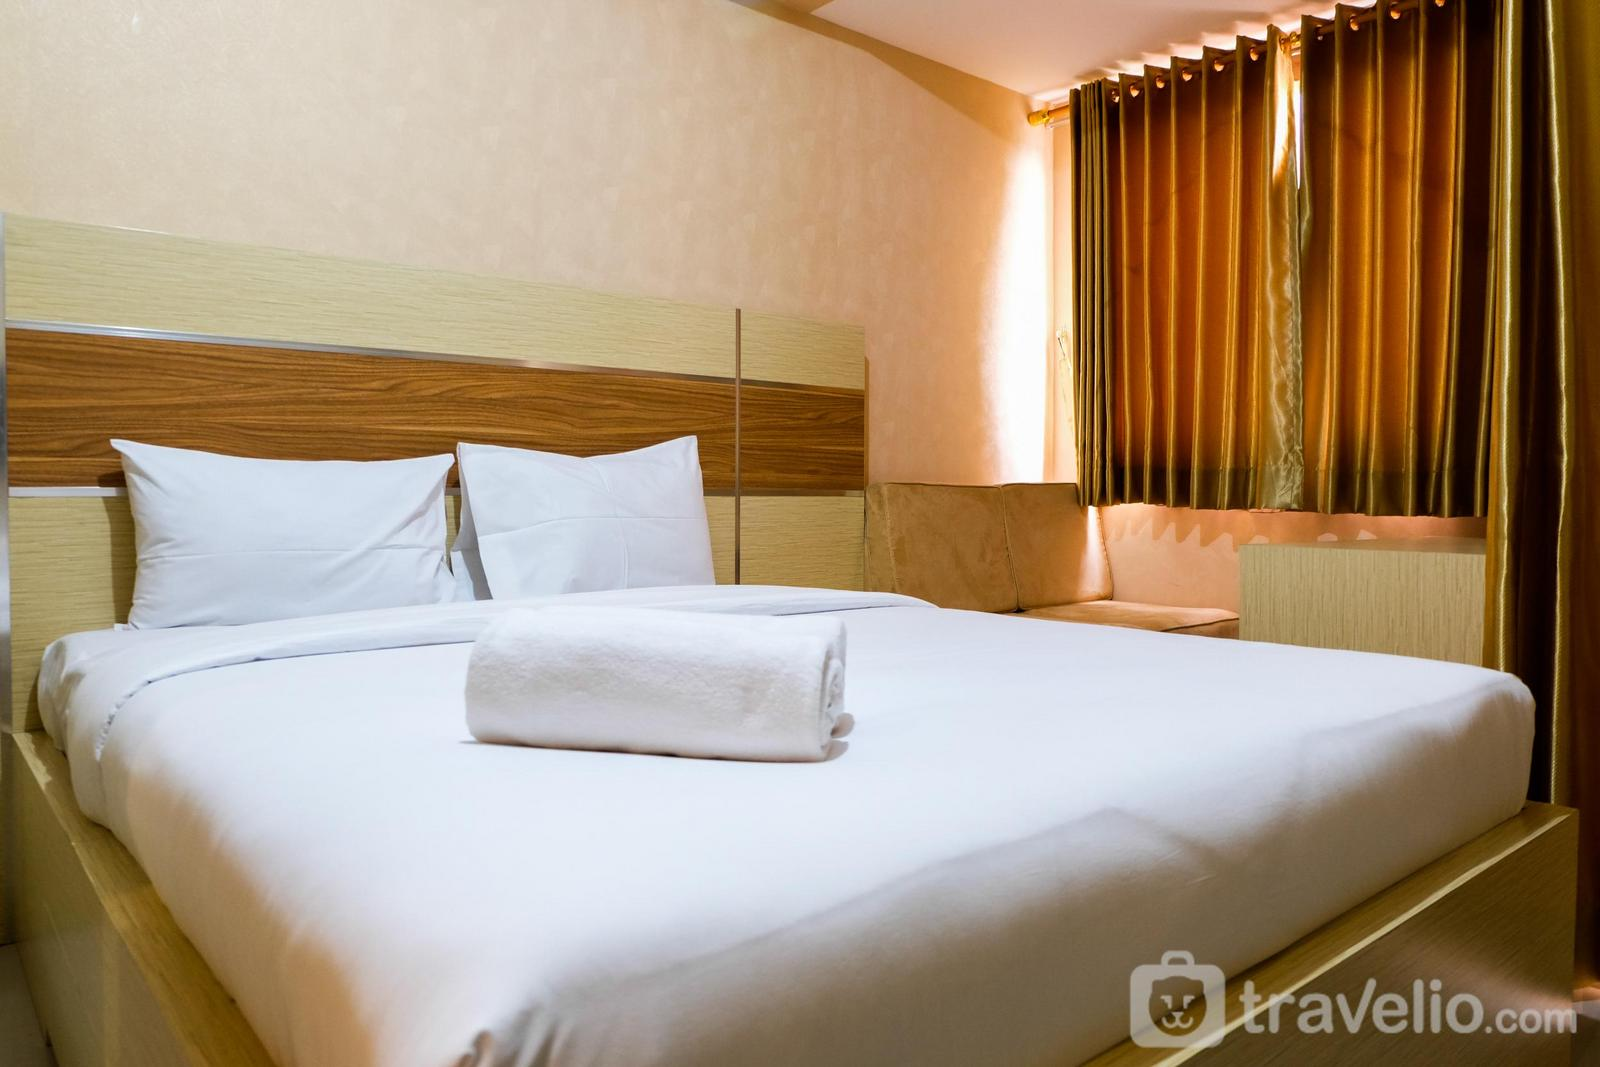 The Oasis Cikarang - Comfy Studio The Oasis Apartment Cikarang By Travelio